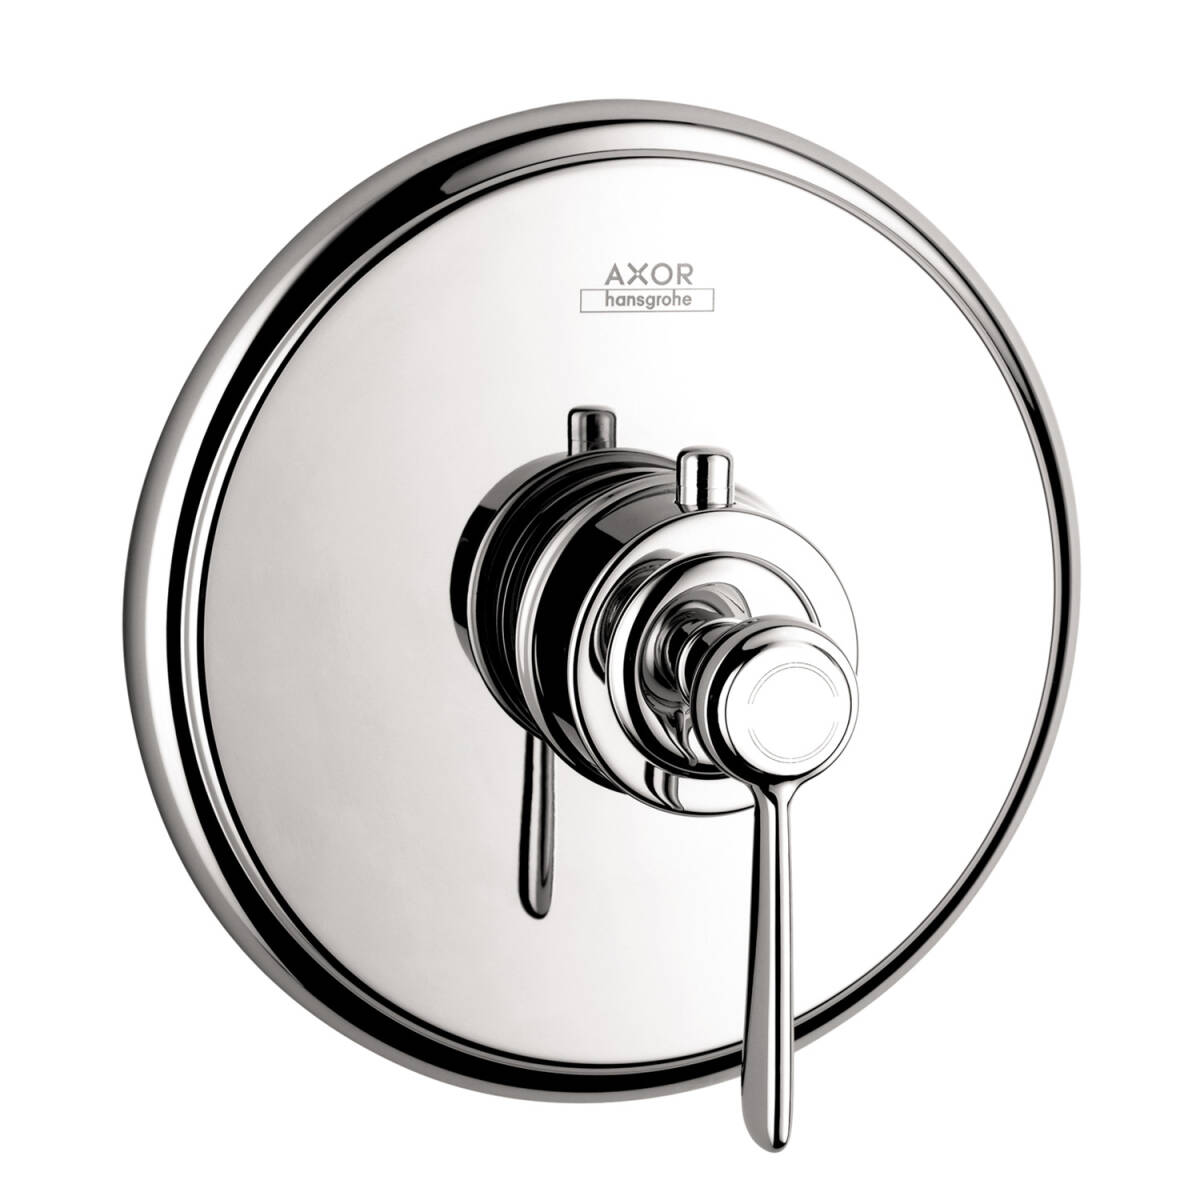 Thermostat HighFlow for concealed installation with lever handle, Chrome, 16824001